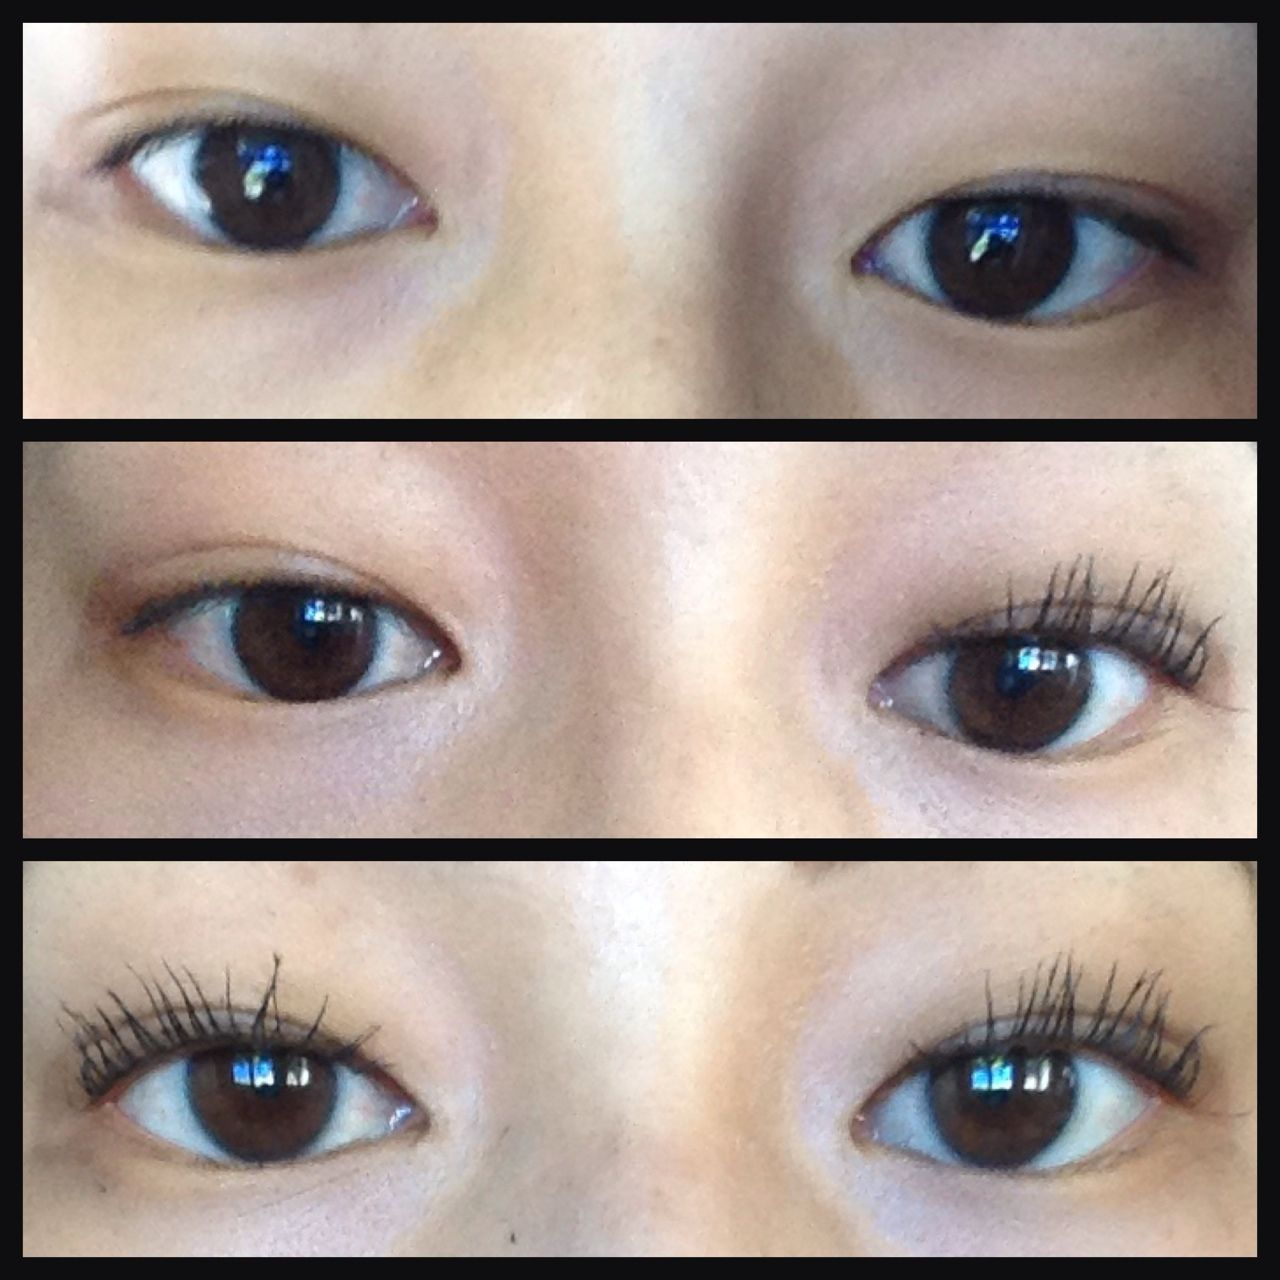 Before and after eye lashes using 3D natural fiber lashes ...